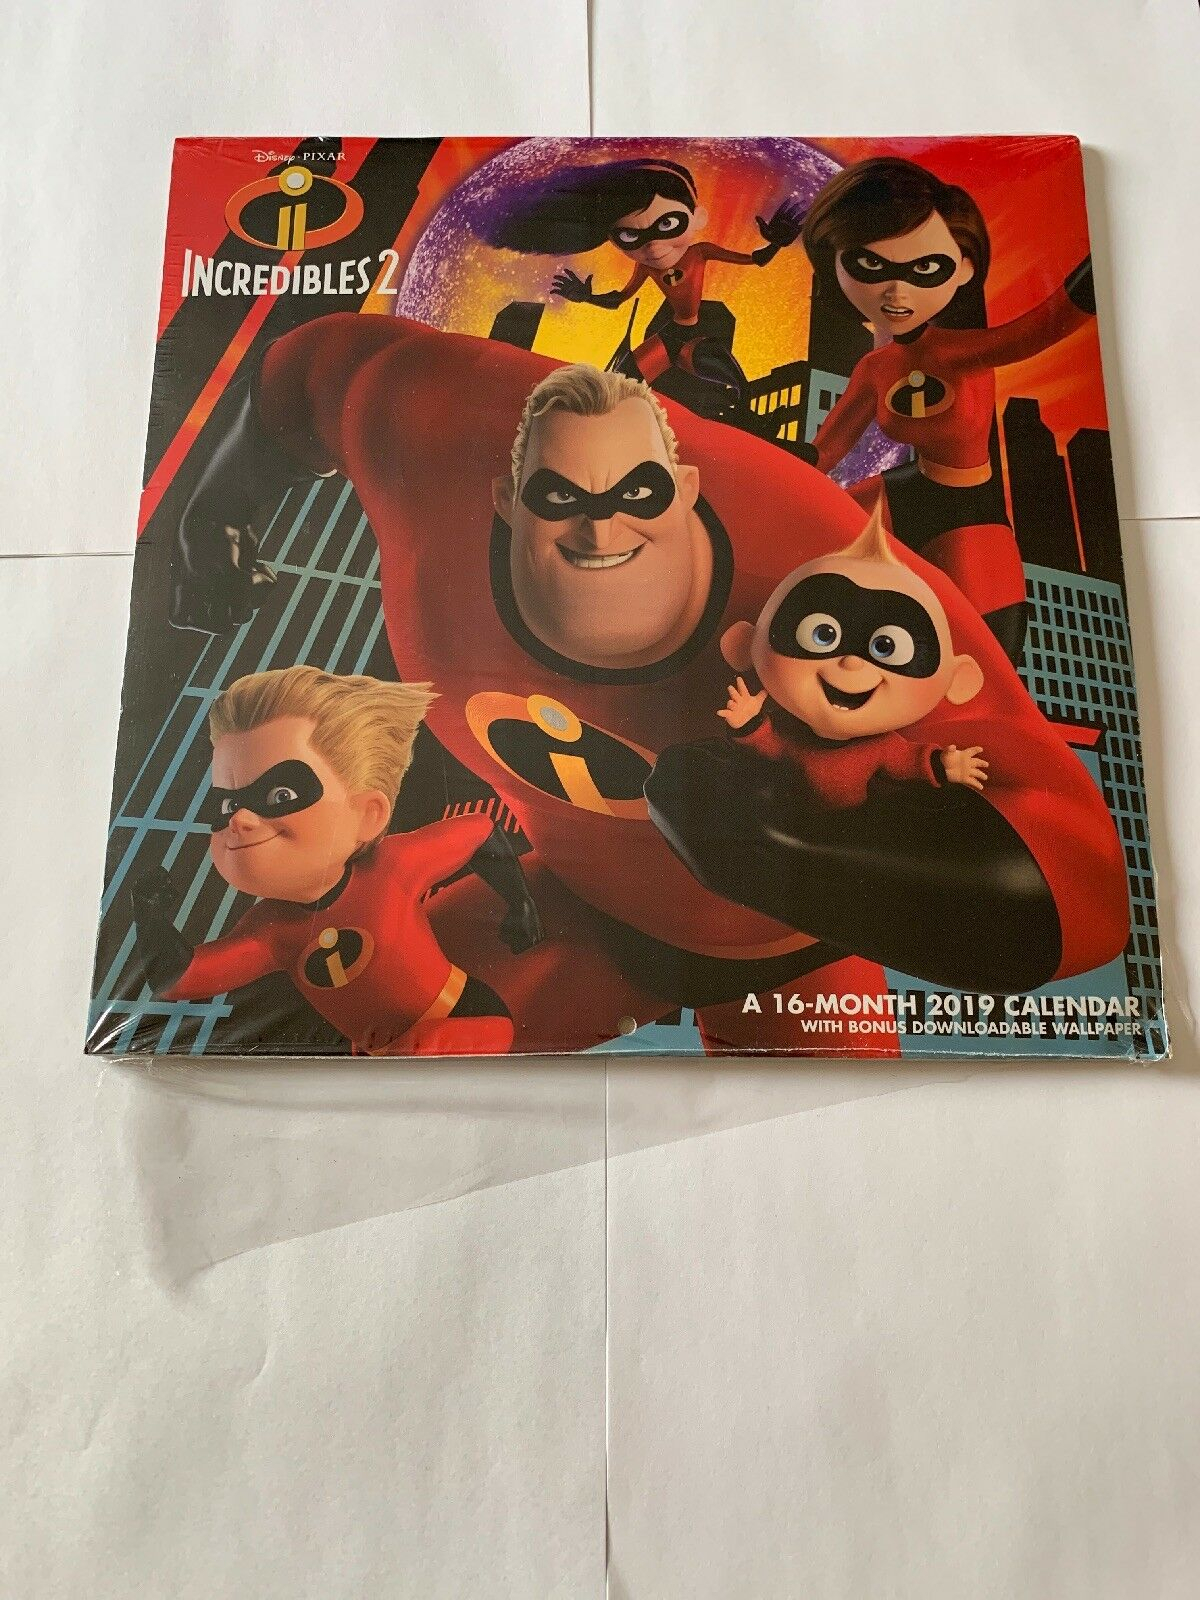 2019 Incredibles 2 2019 Wall Calendar, Animated Moviesacco Brands